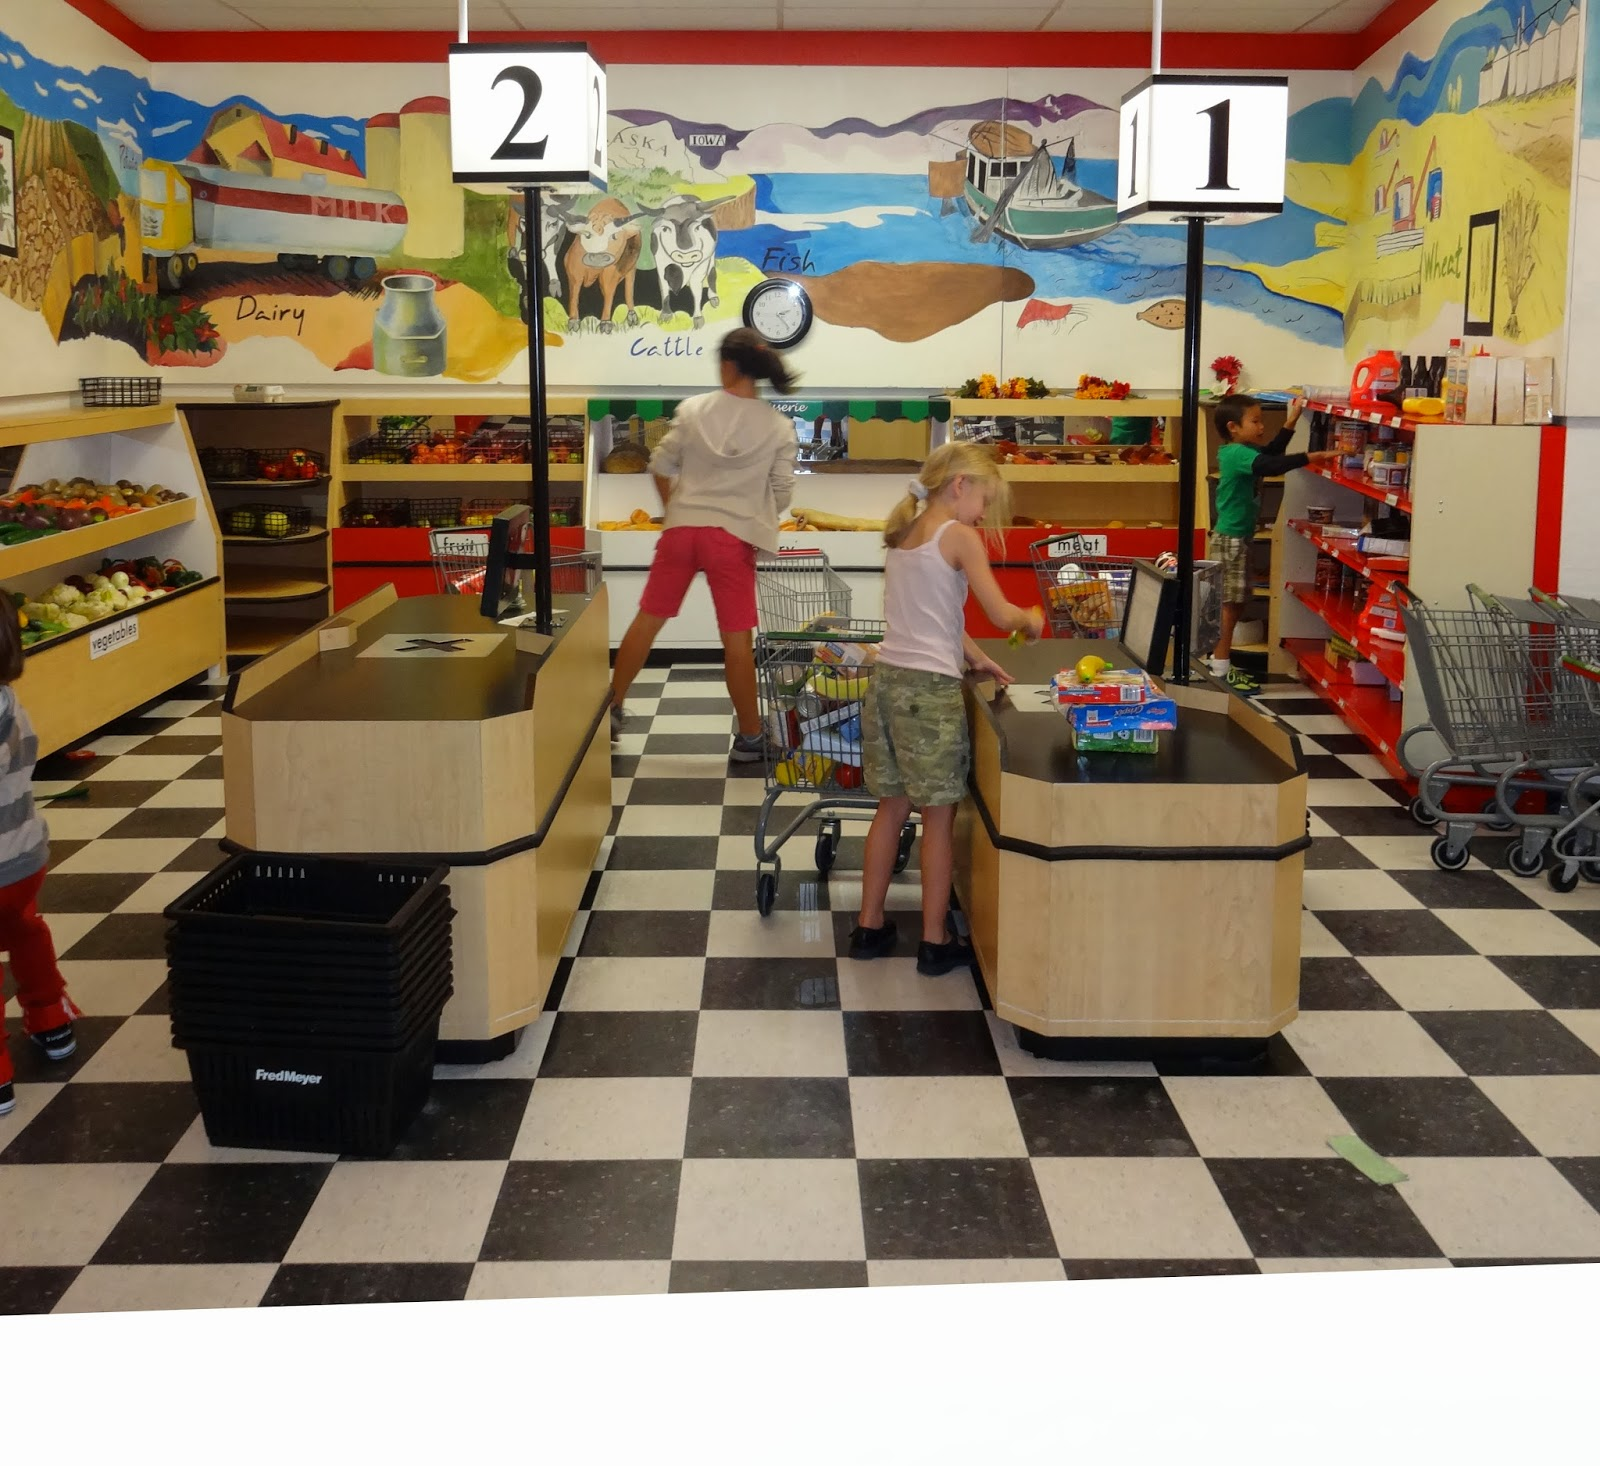 Boise Daily Photo: Busy Grocery Store - Just for Kids